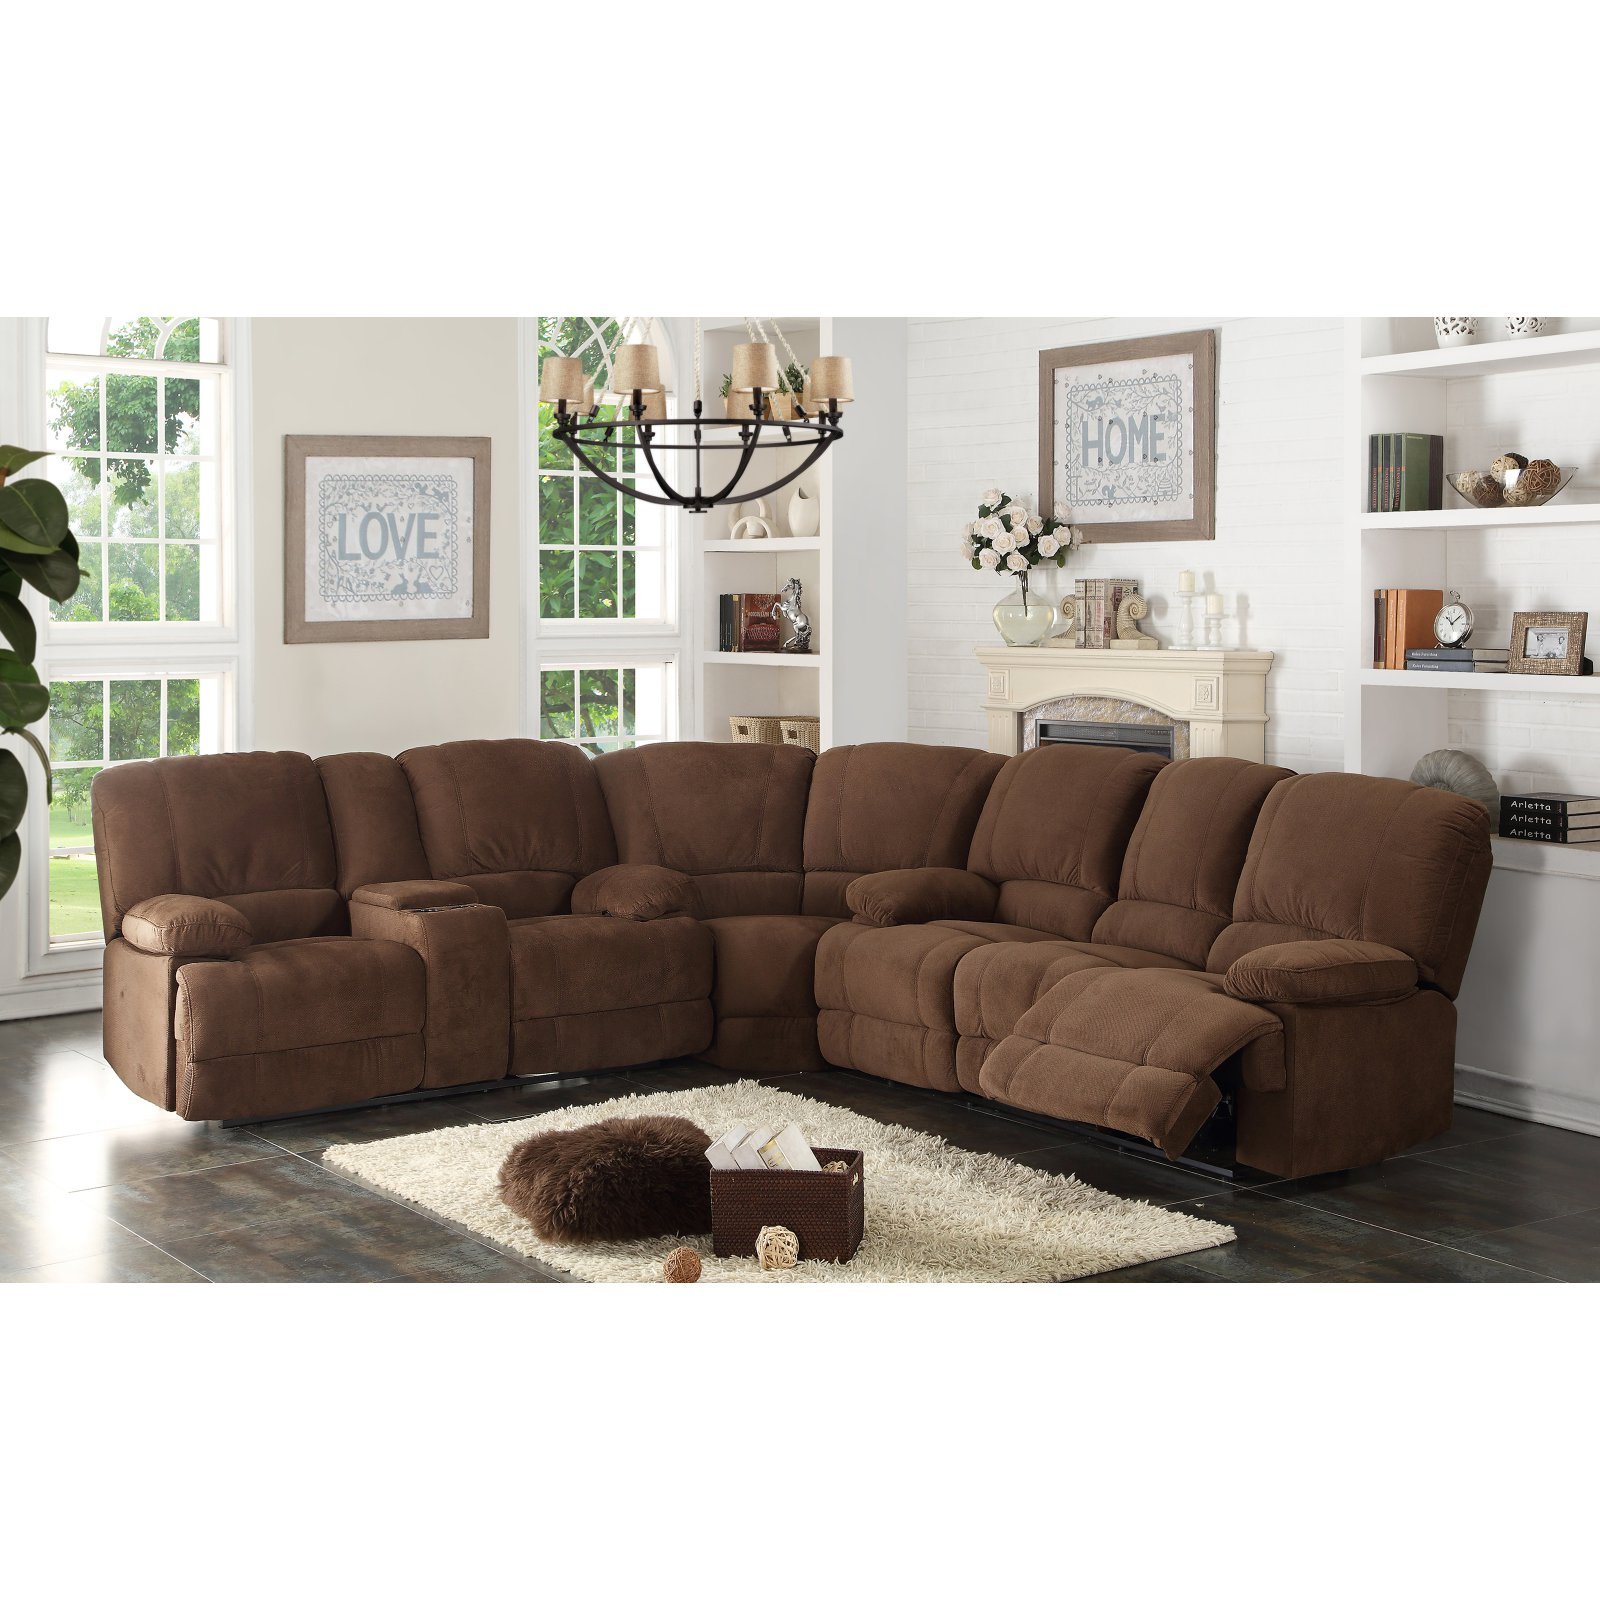 AC Pacific Kevin 3 Piece Sectional Sofa Set by A C Pacific Corp